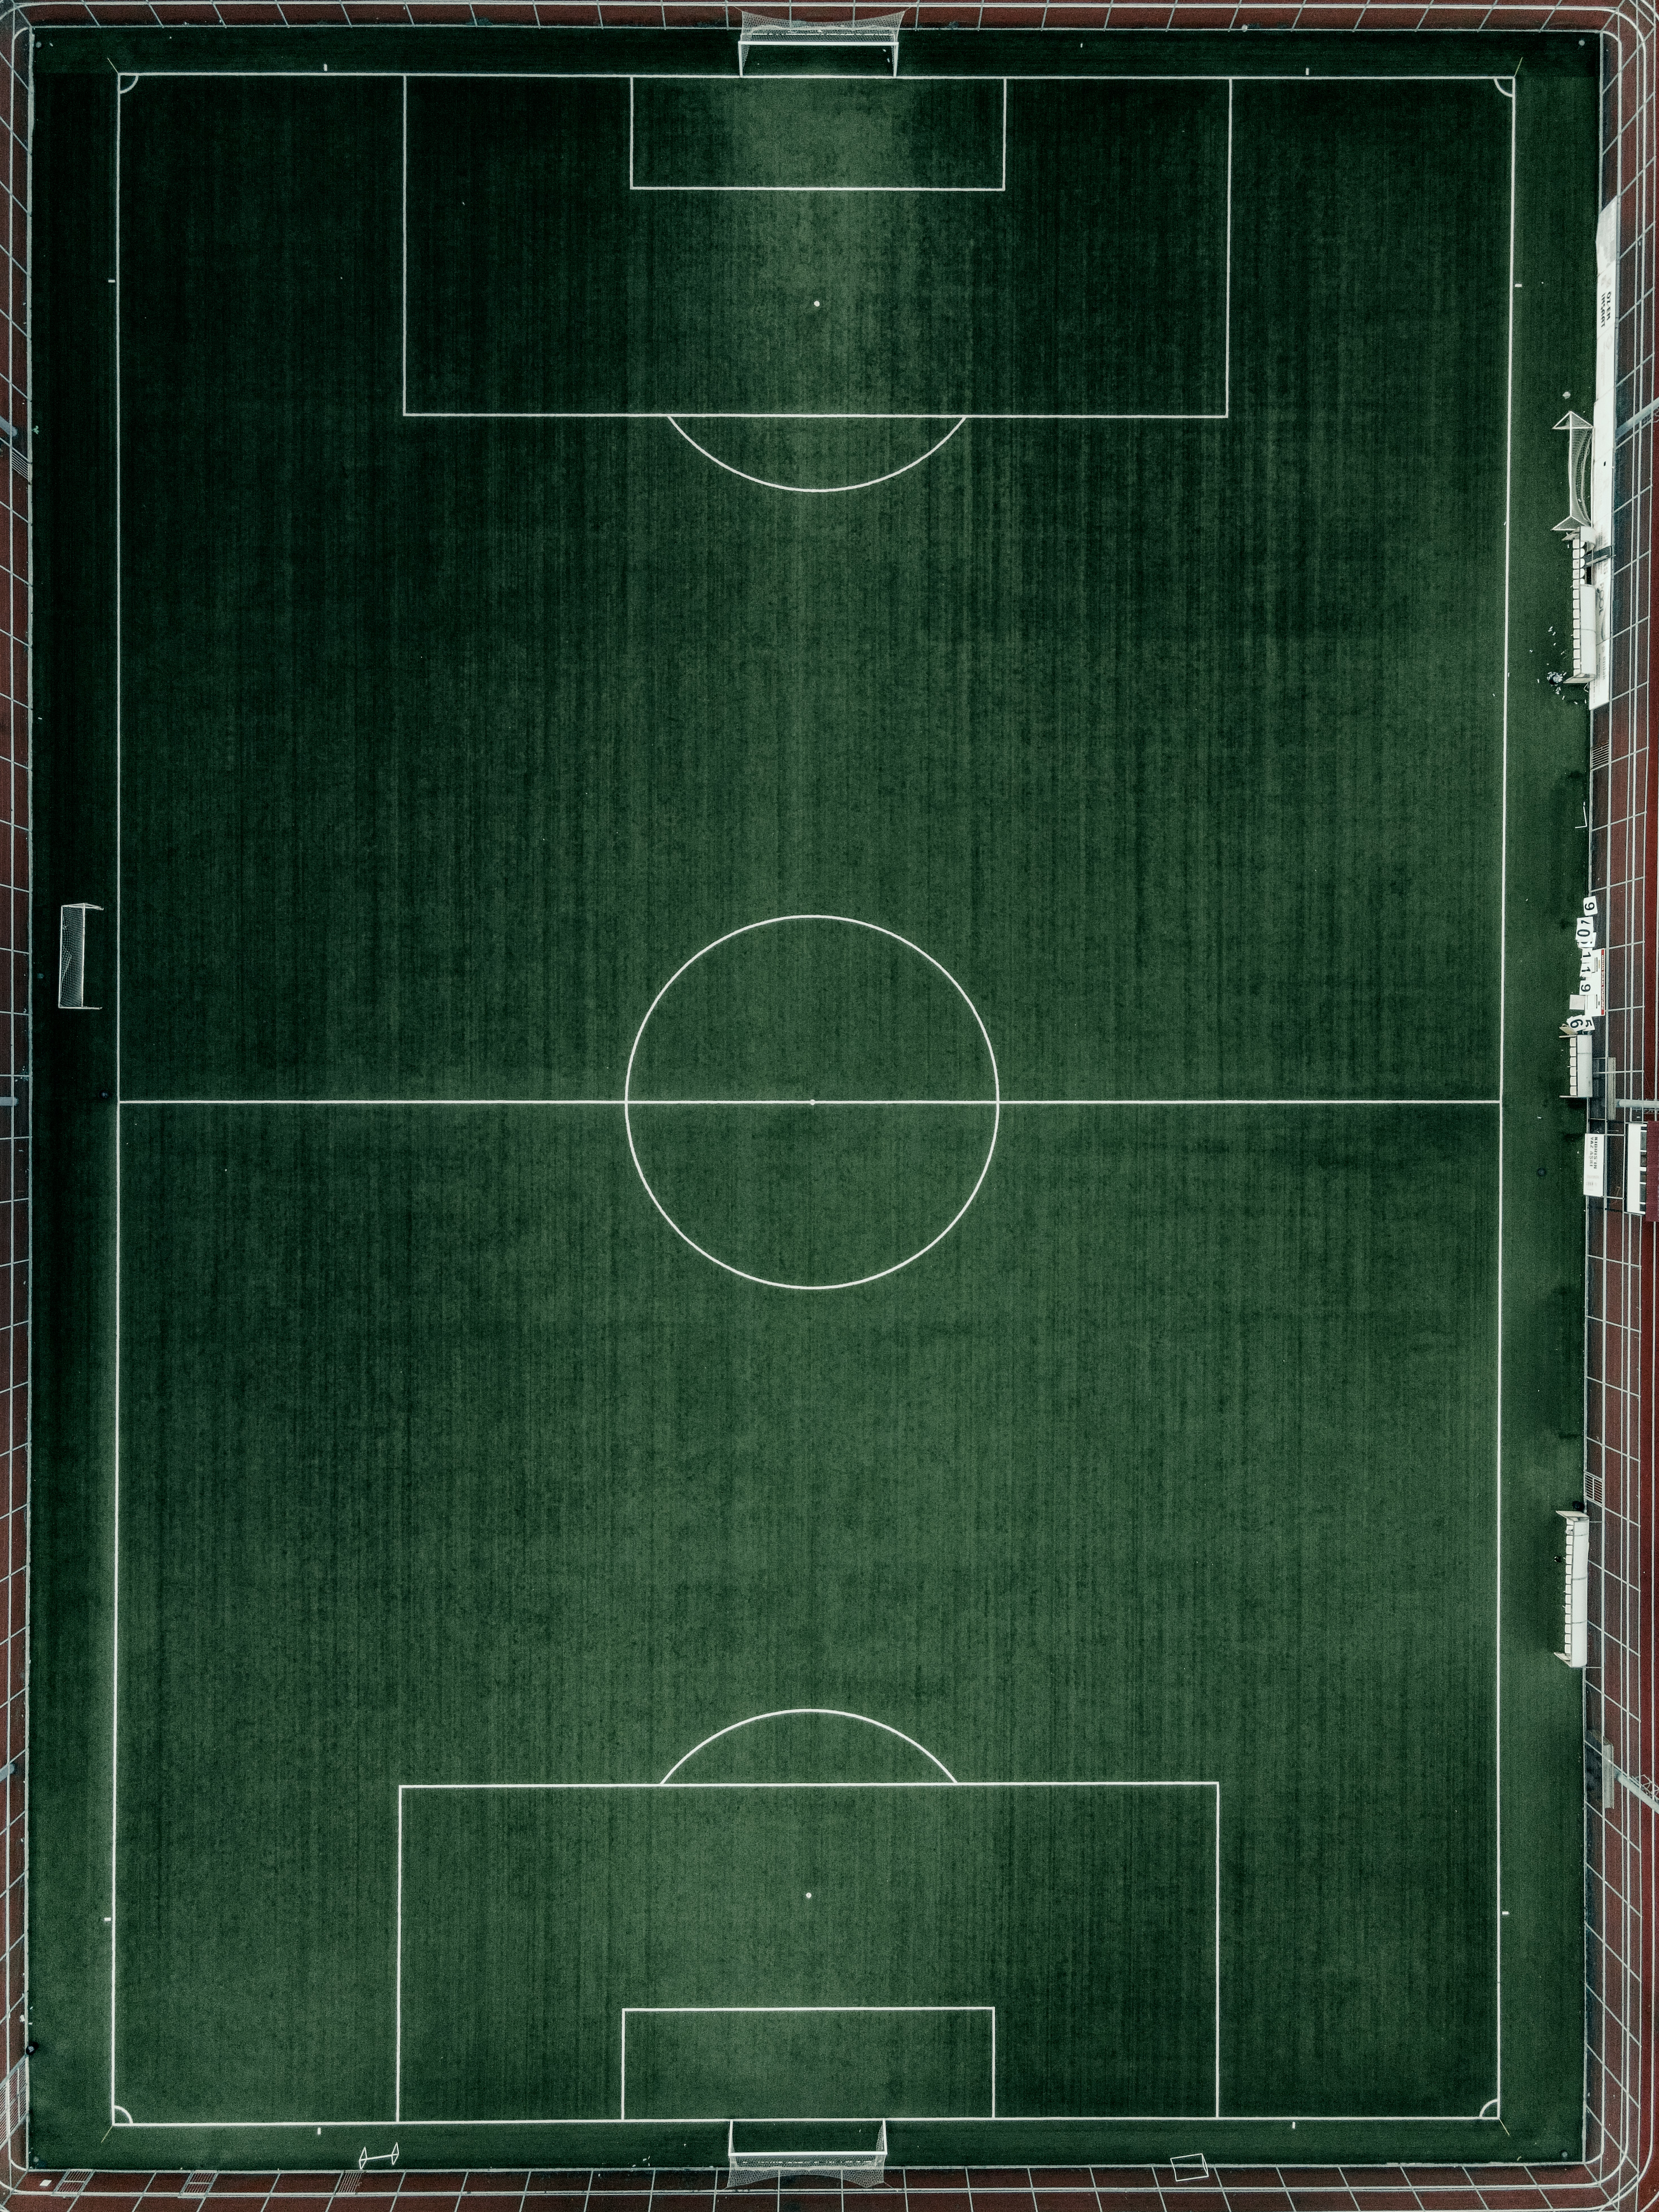 97790 download wallpaper Sports, Football Field, View From Above, Football, Lawn screensavers and pictures for free